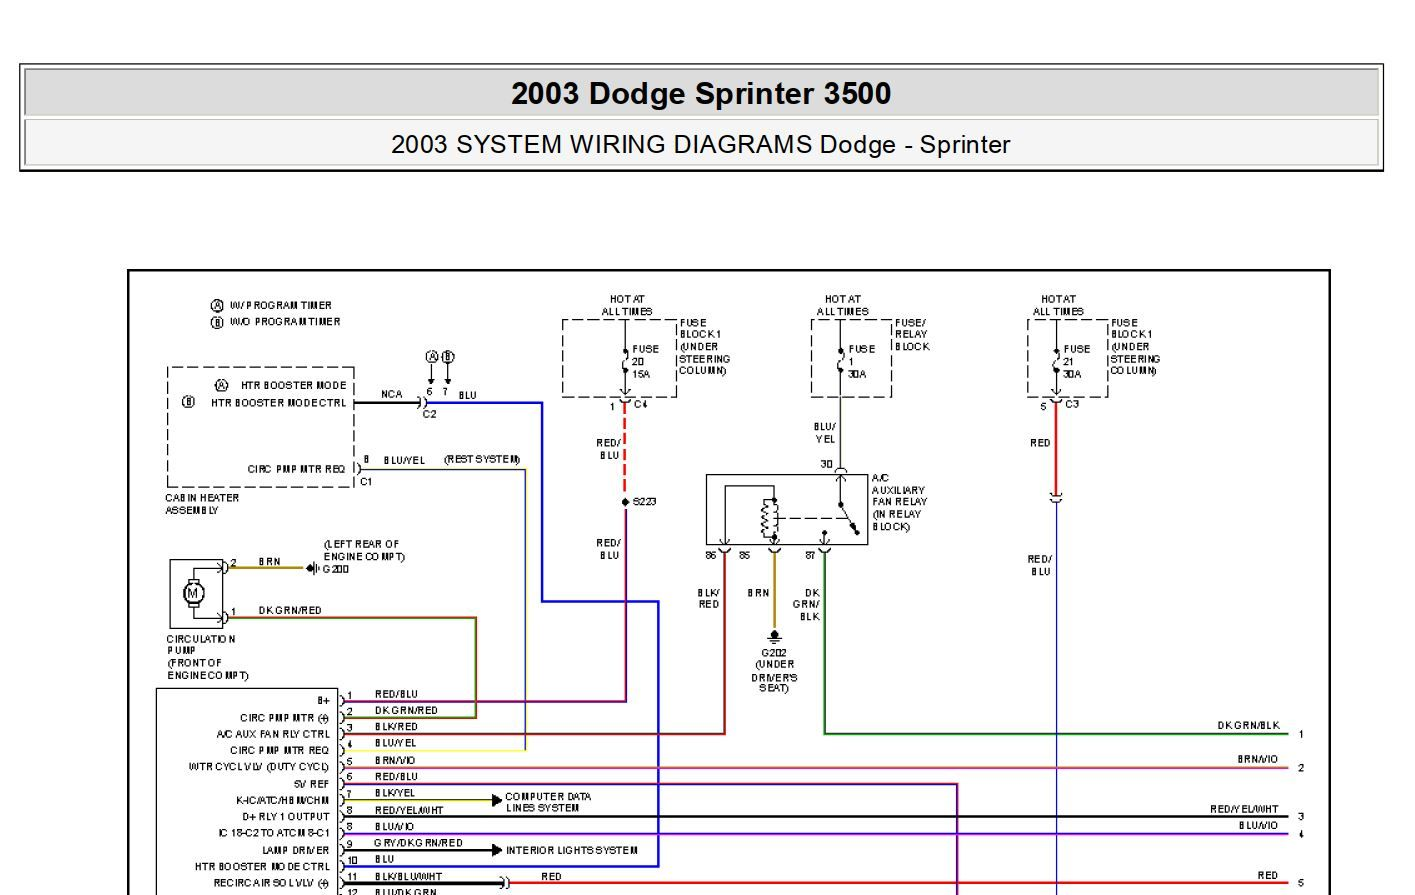 New Post Dodge Sprinter 3500 2003 System Wiring Diagrams Has Been Published On Procarman Electrical Wiring Diagram Van Conversion Interior Electrical Diagram